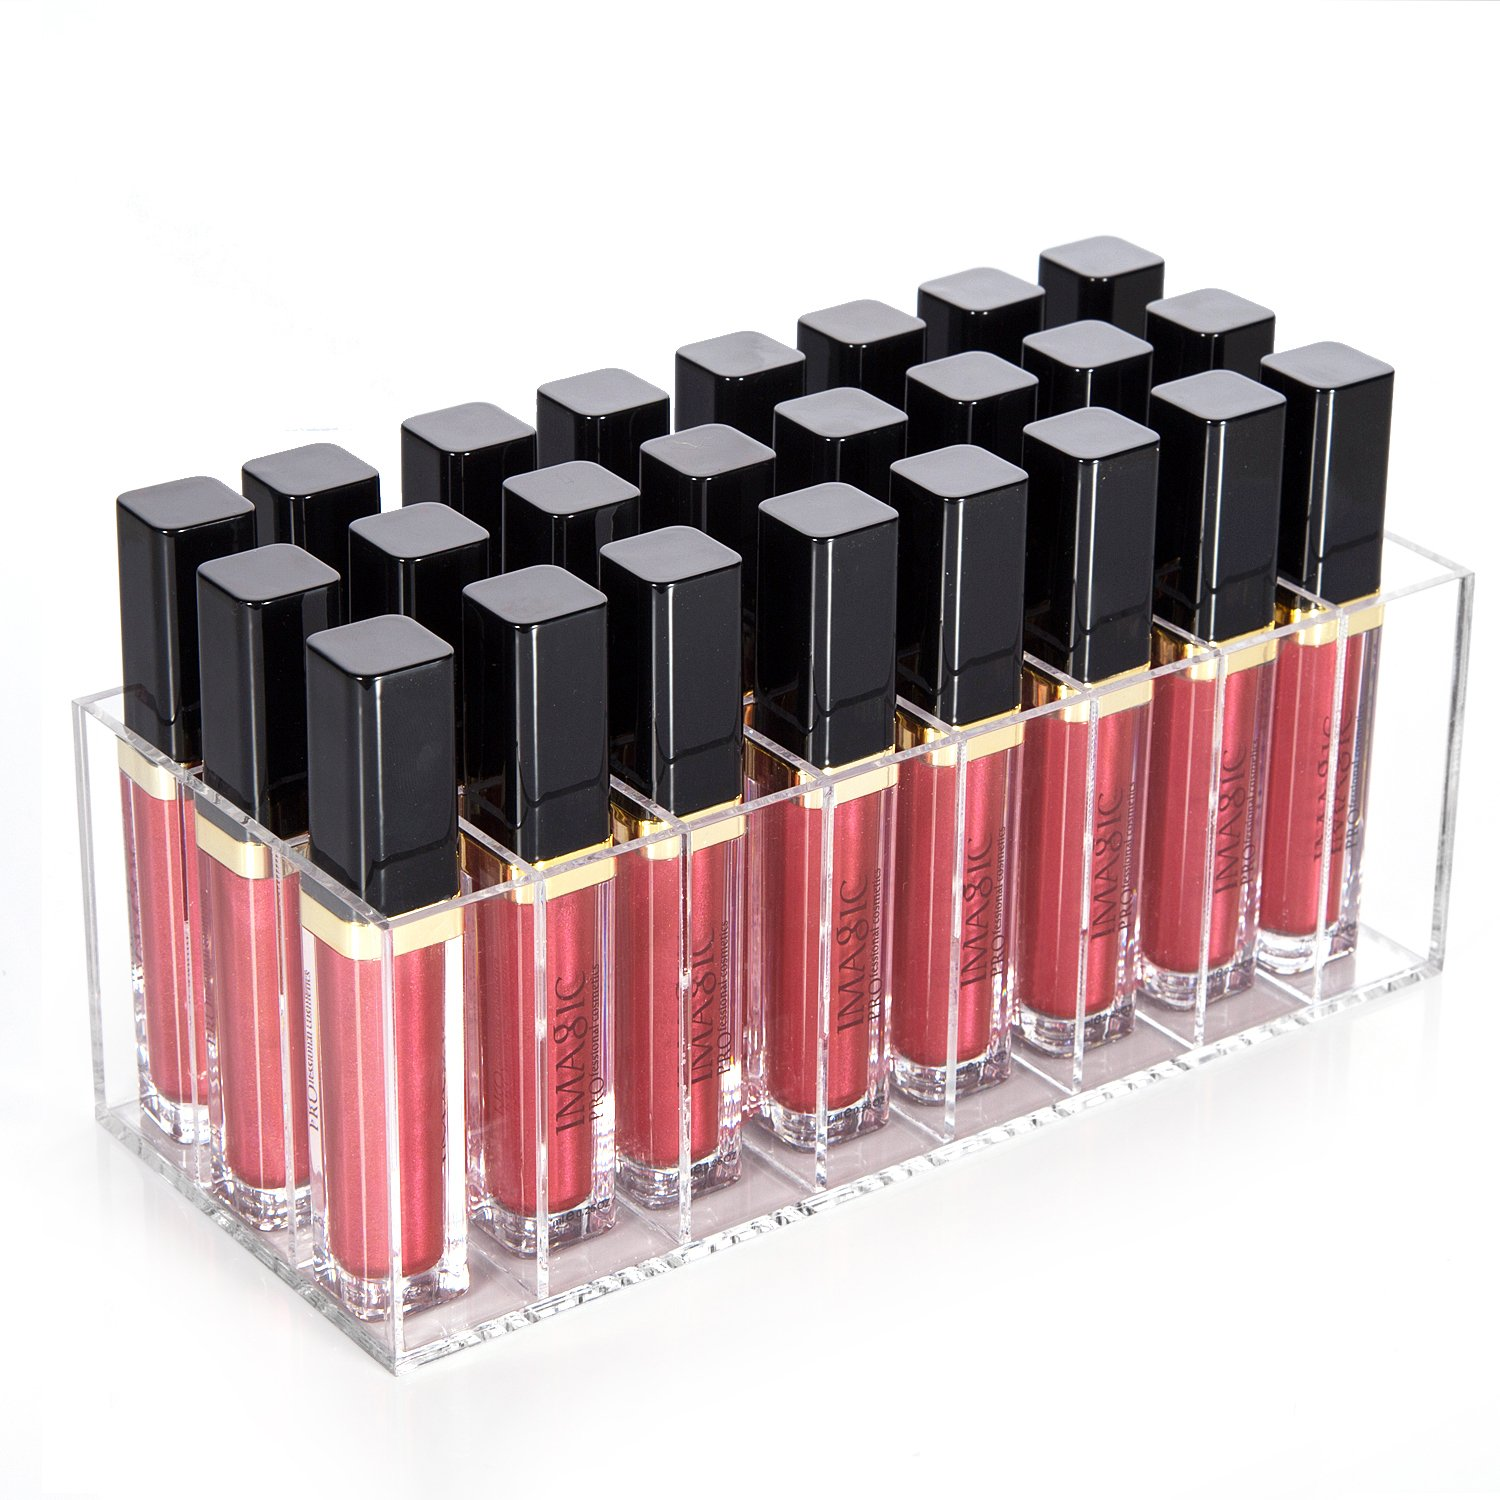 Hblife Lip Gloss Holder Organizer, 24 Spaces Clear Acrylic Makeup Lipgloss Display Case by Hblife